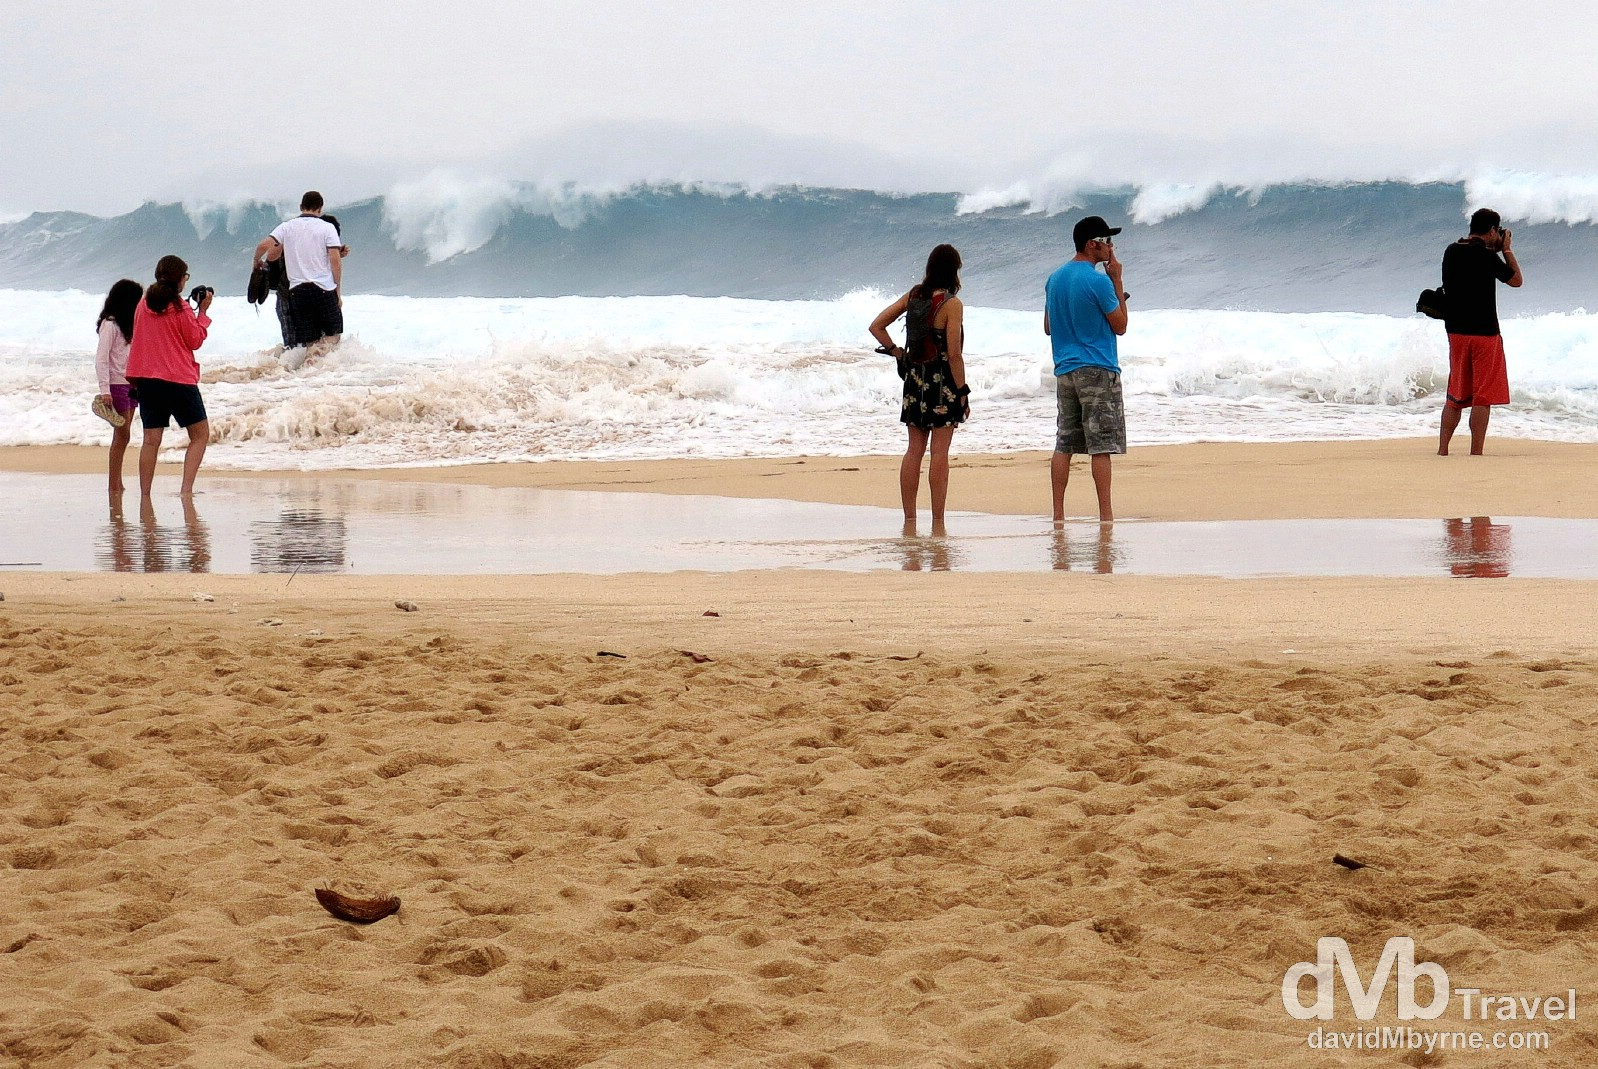 Watching the winter, experienced-surfers-only waves on Ehukai Beach Park, North Shore, Oahu, Hawaii, USA. March 10th 2013.